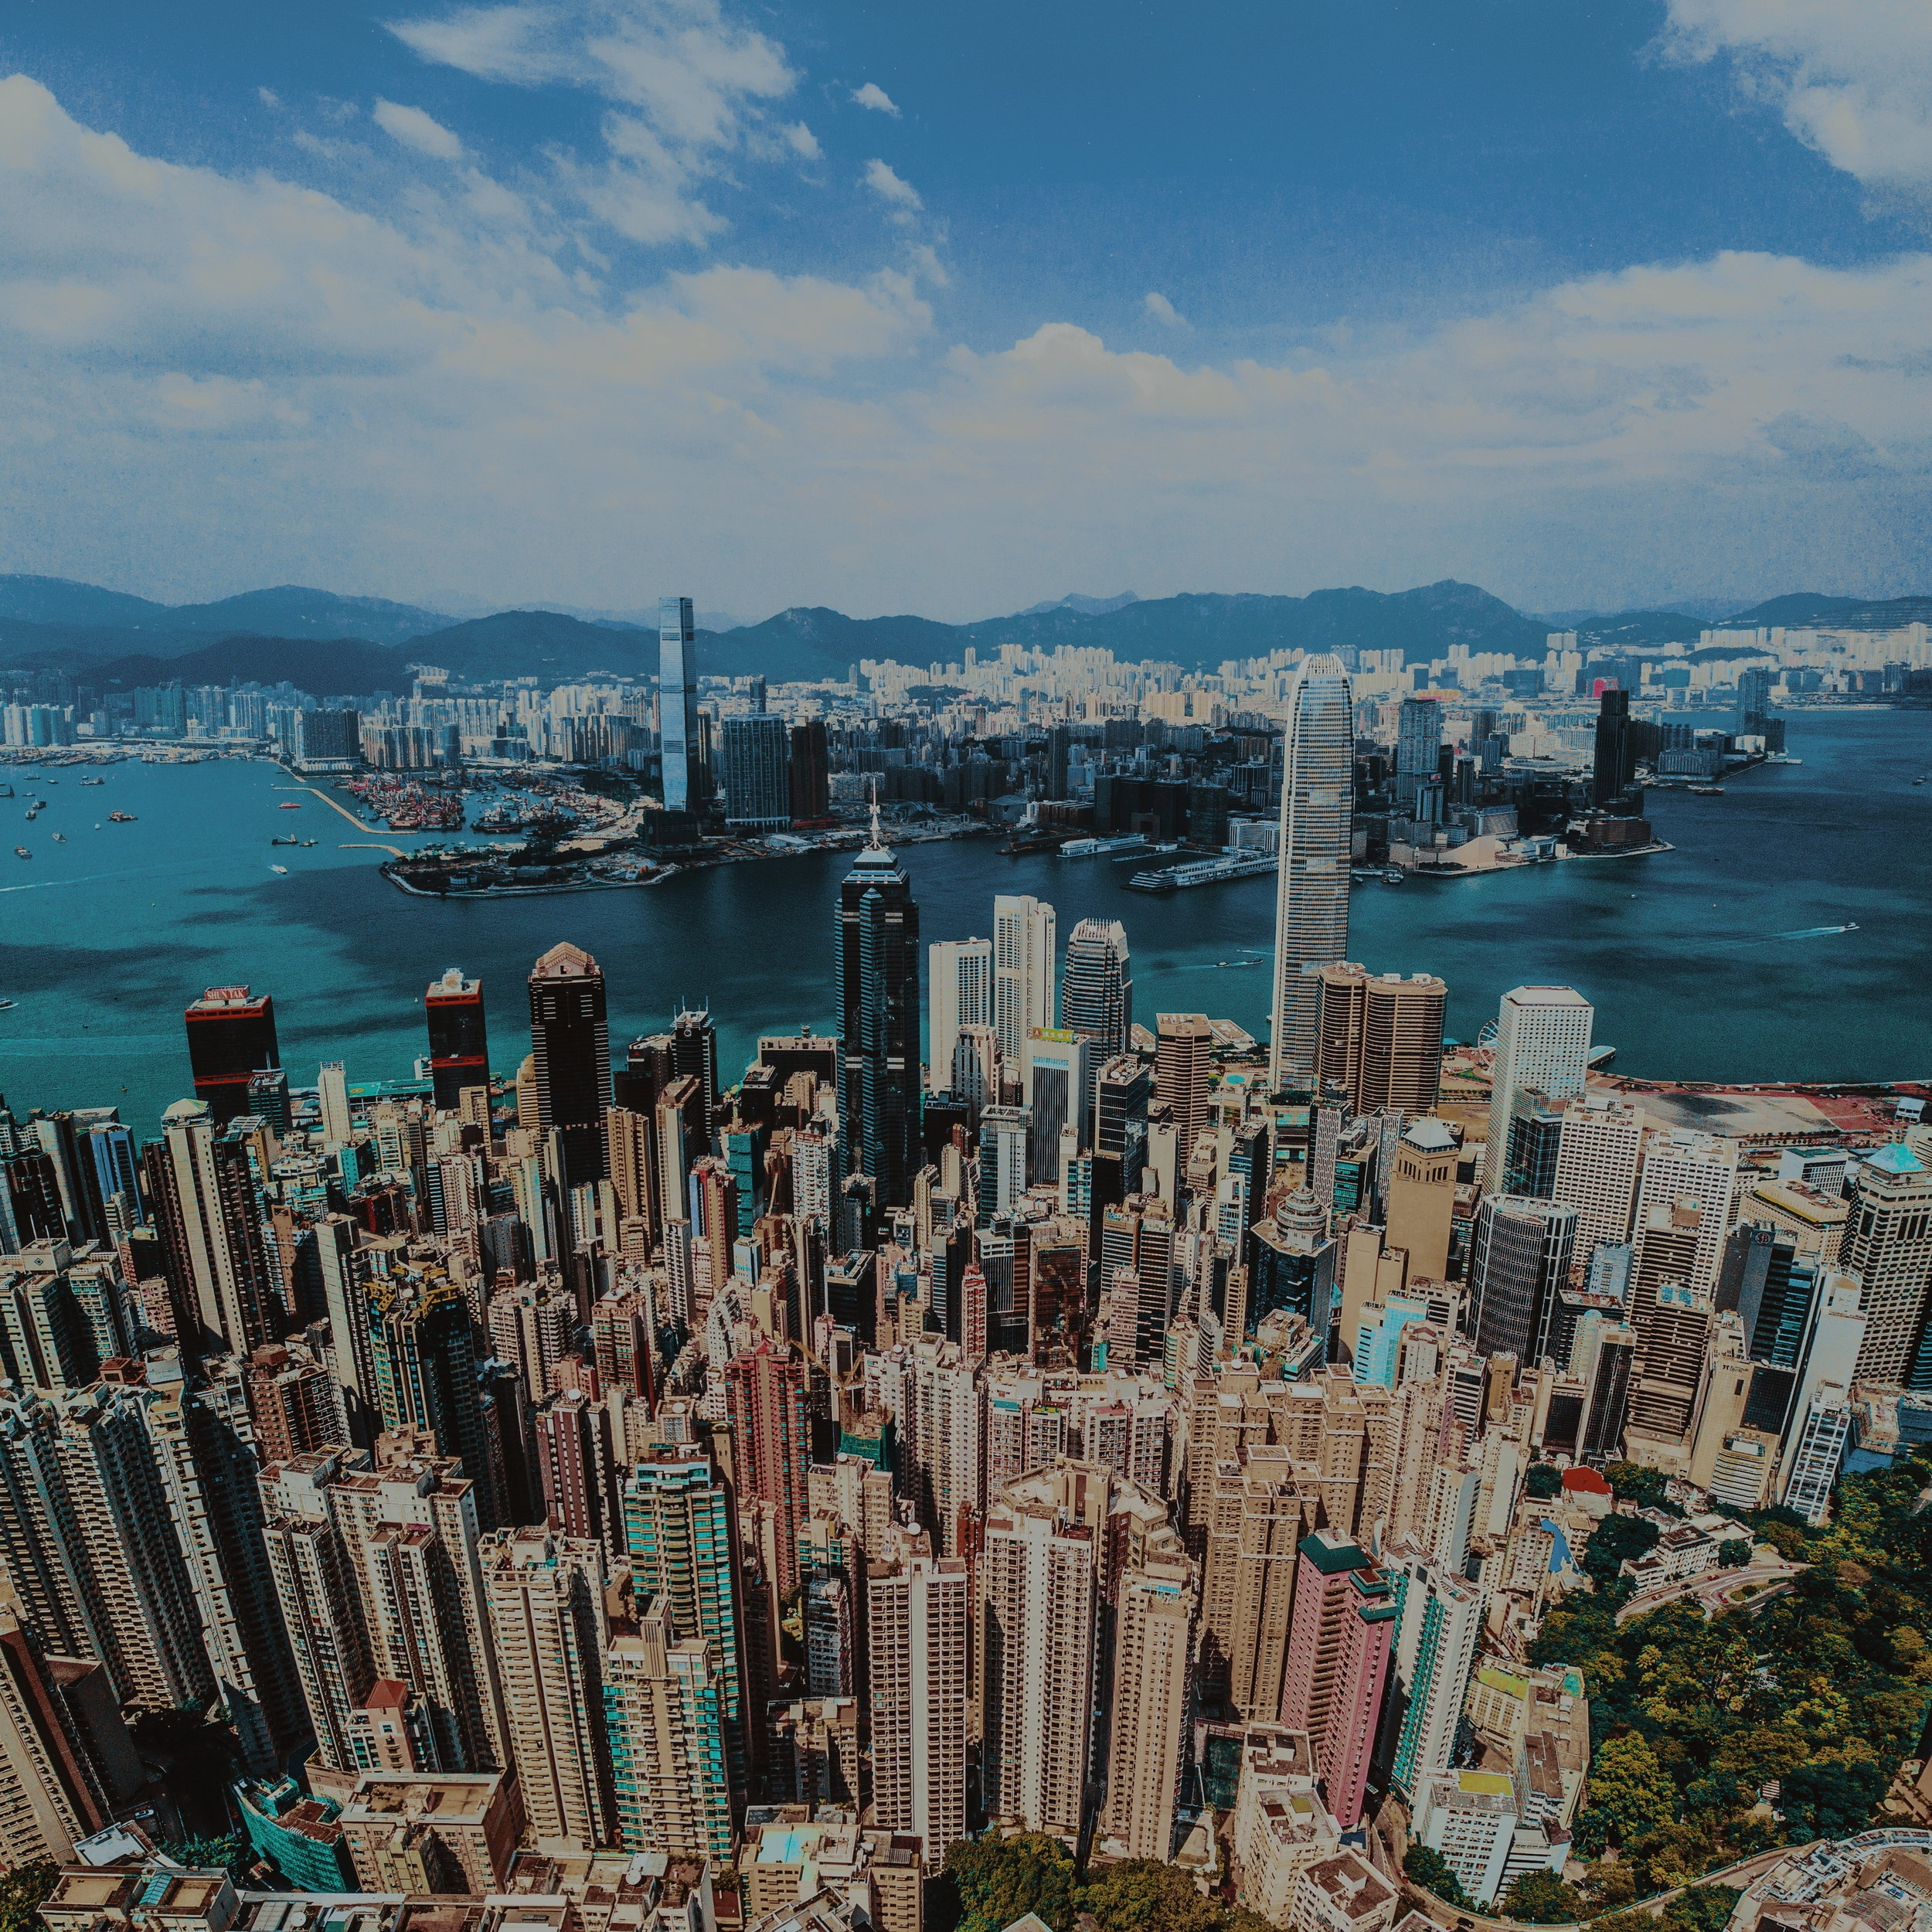 january 14, 2019 hong kong - US IMMIGRATION BY INVESTMENT (EB-5)